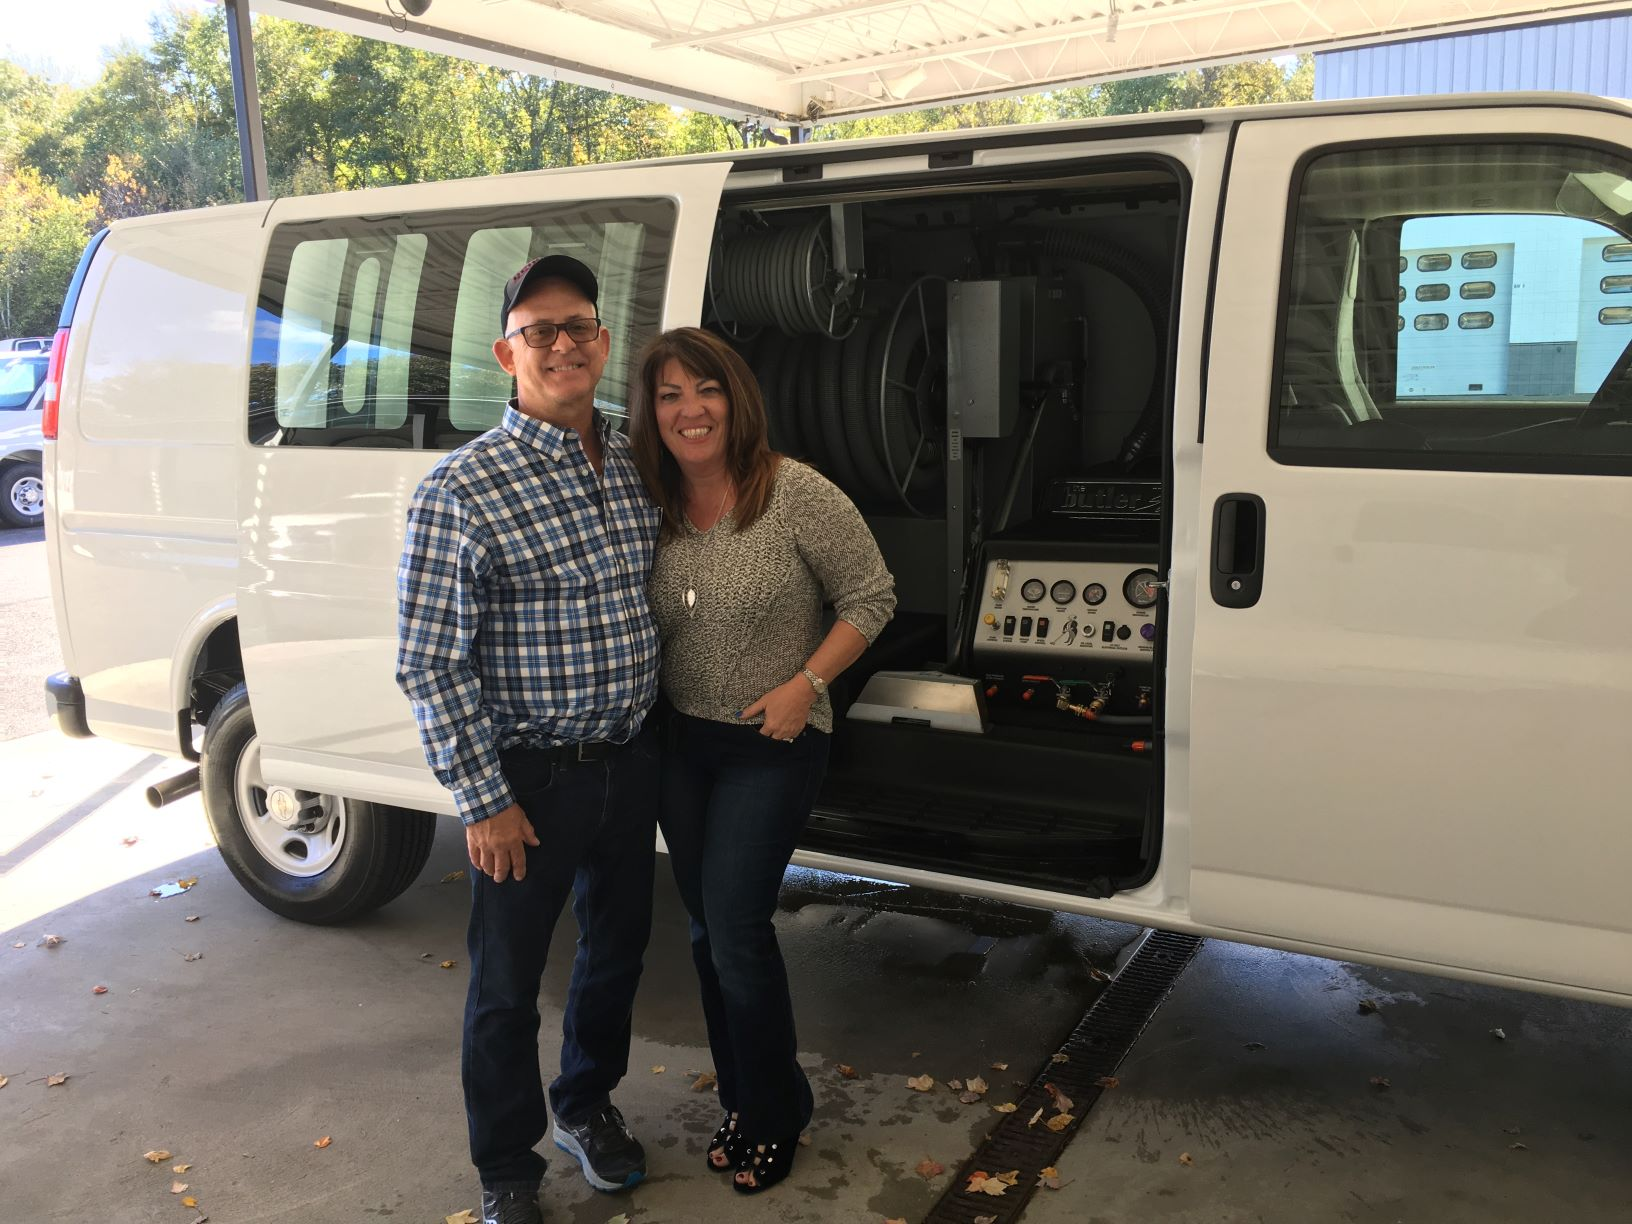 John and Marilee recently purchased and took delivery of their 7th Butler System Truckmount